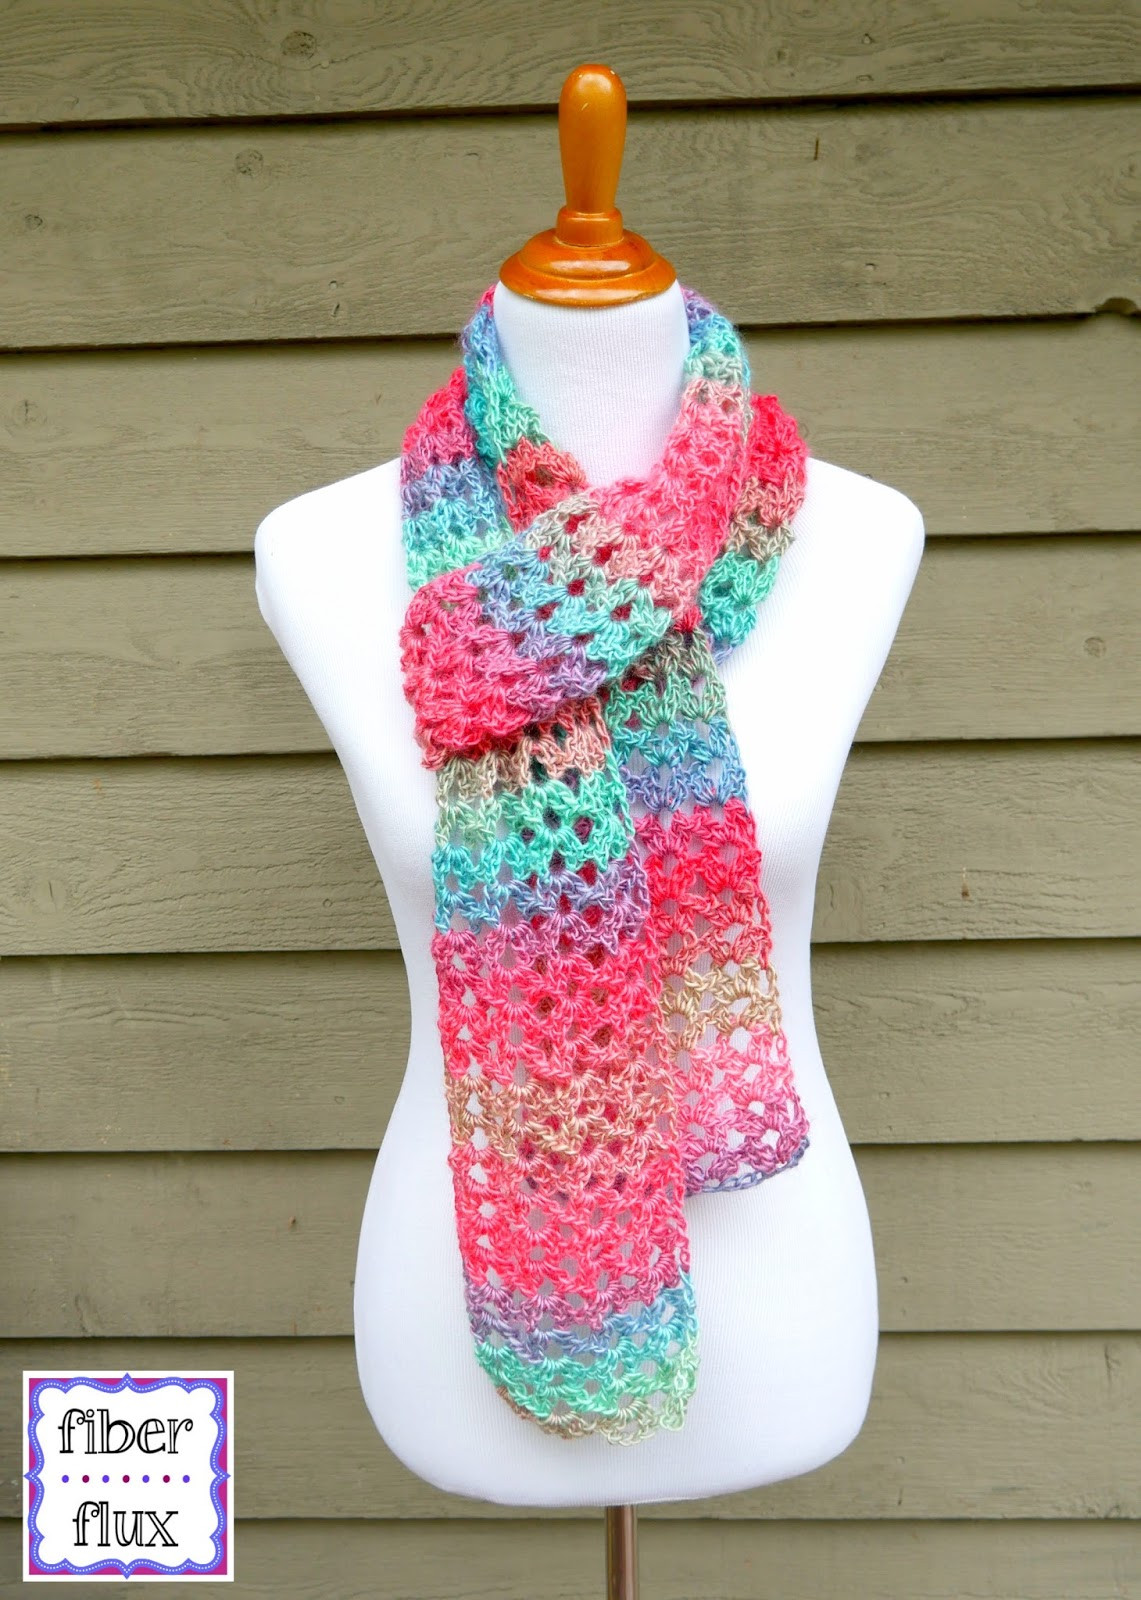 Crochet Scarves Patterns Awesome Fiber Flux Free Crochet Pattern island Lace Scarf Of Adorable 49 Models Crochet Scarves Patterns